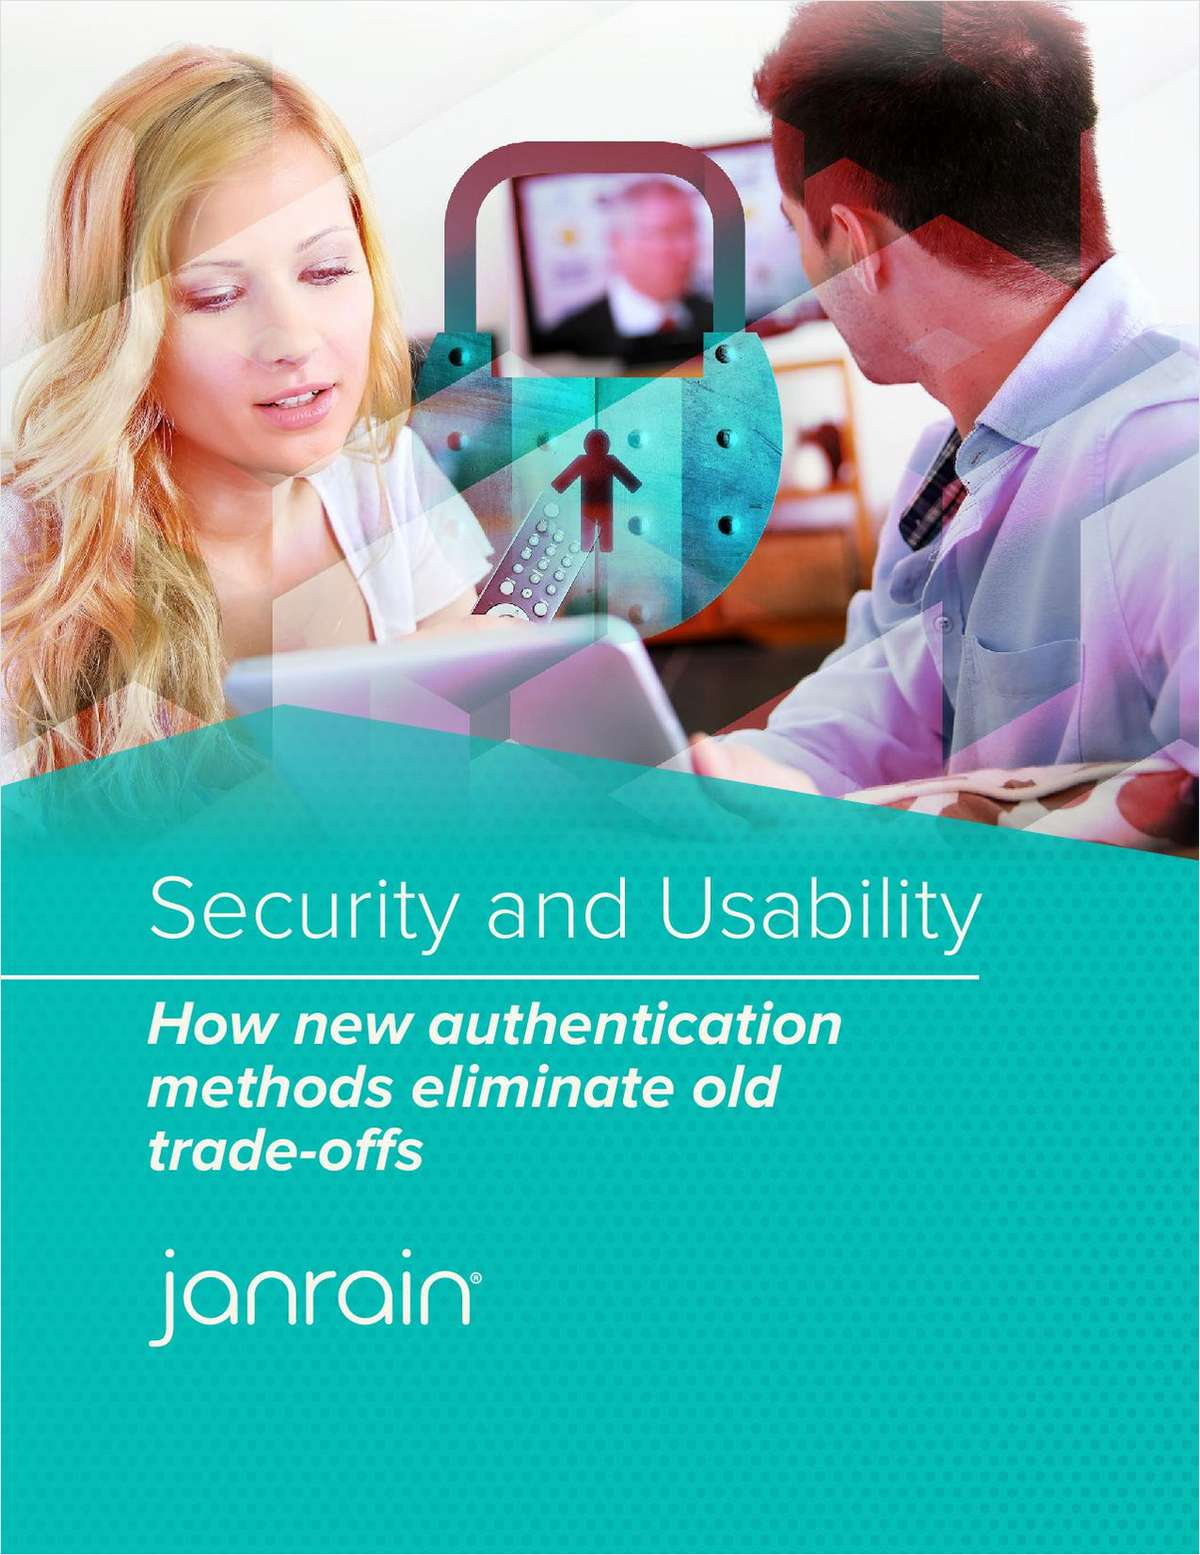 Security and Usability: How New Authentication Methods Eliminate Old Trade-offs